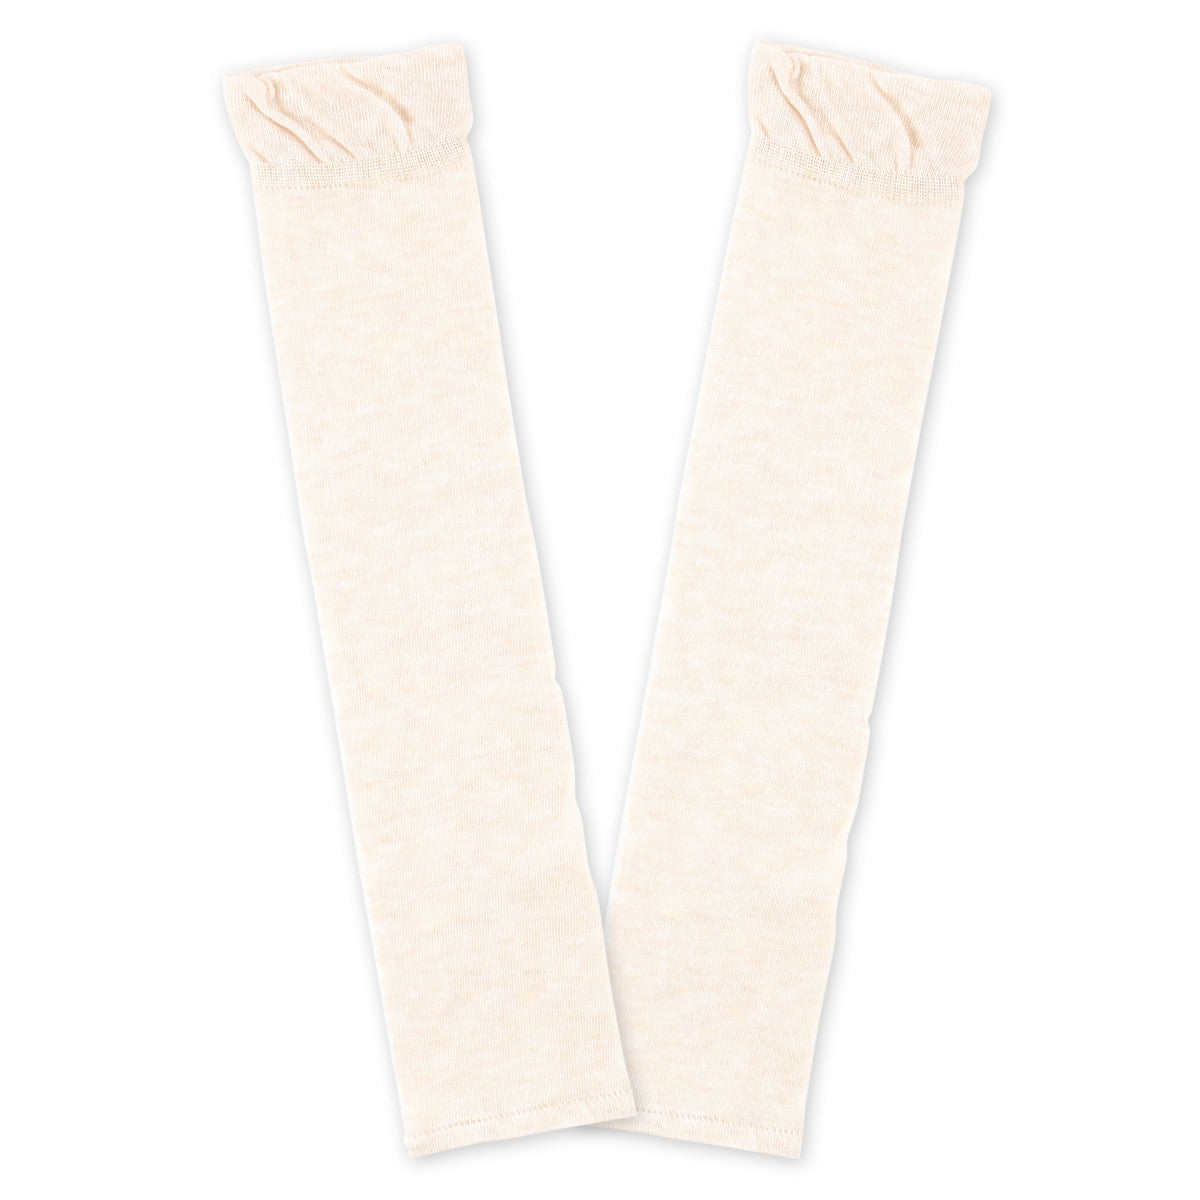 Prevent-the-chill Legwarmers | Beige - CHERRYSTONE by MARKET TO JAPAN LLC